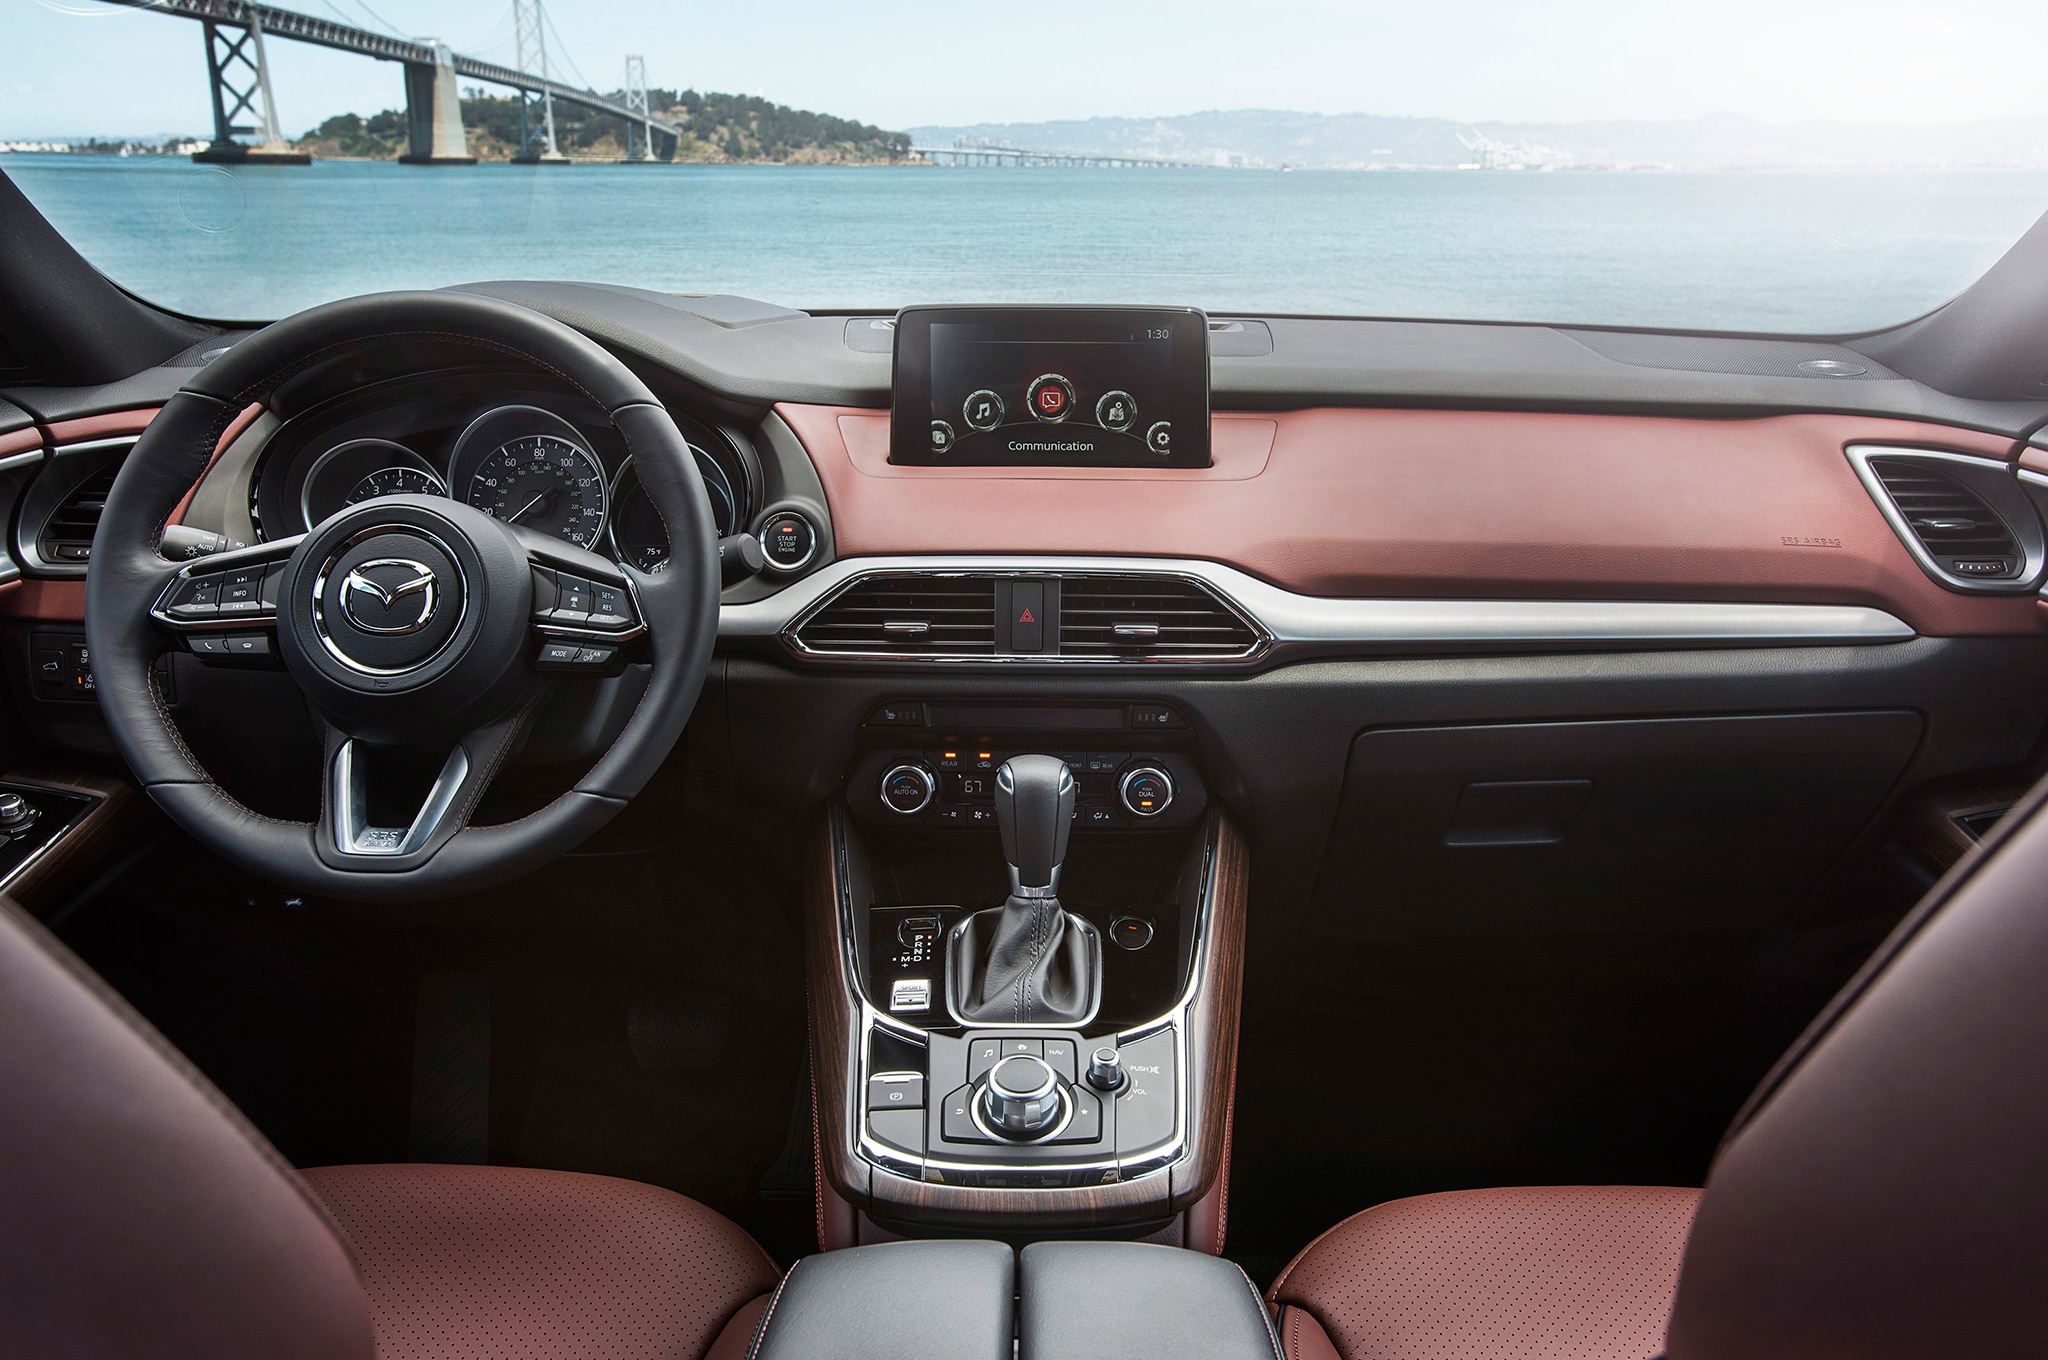 to connect Apple iPhone and 2016 Mazda CX-5 to Bluetooth